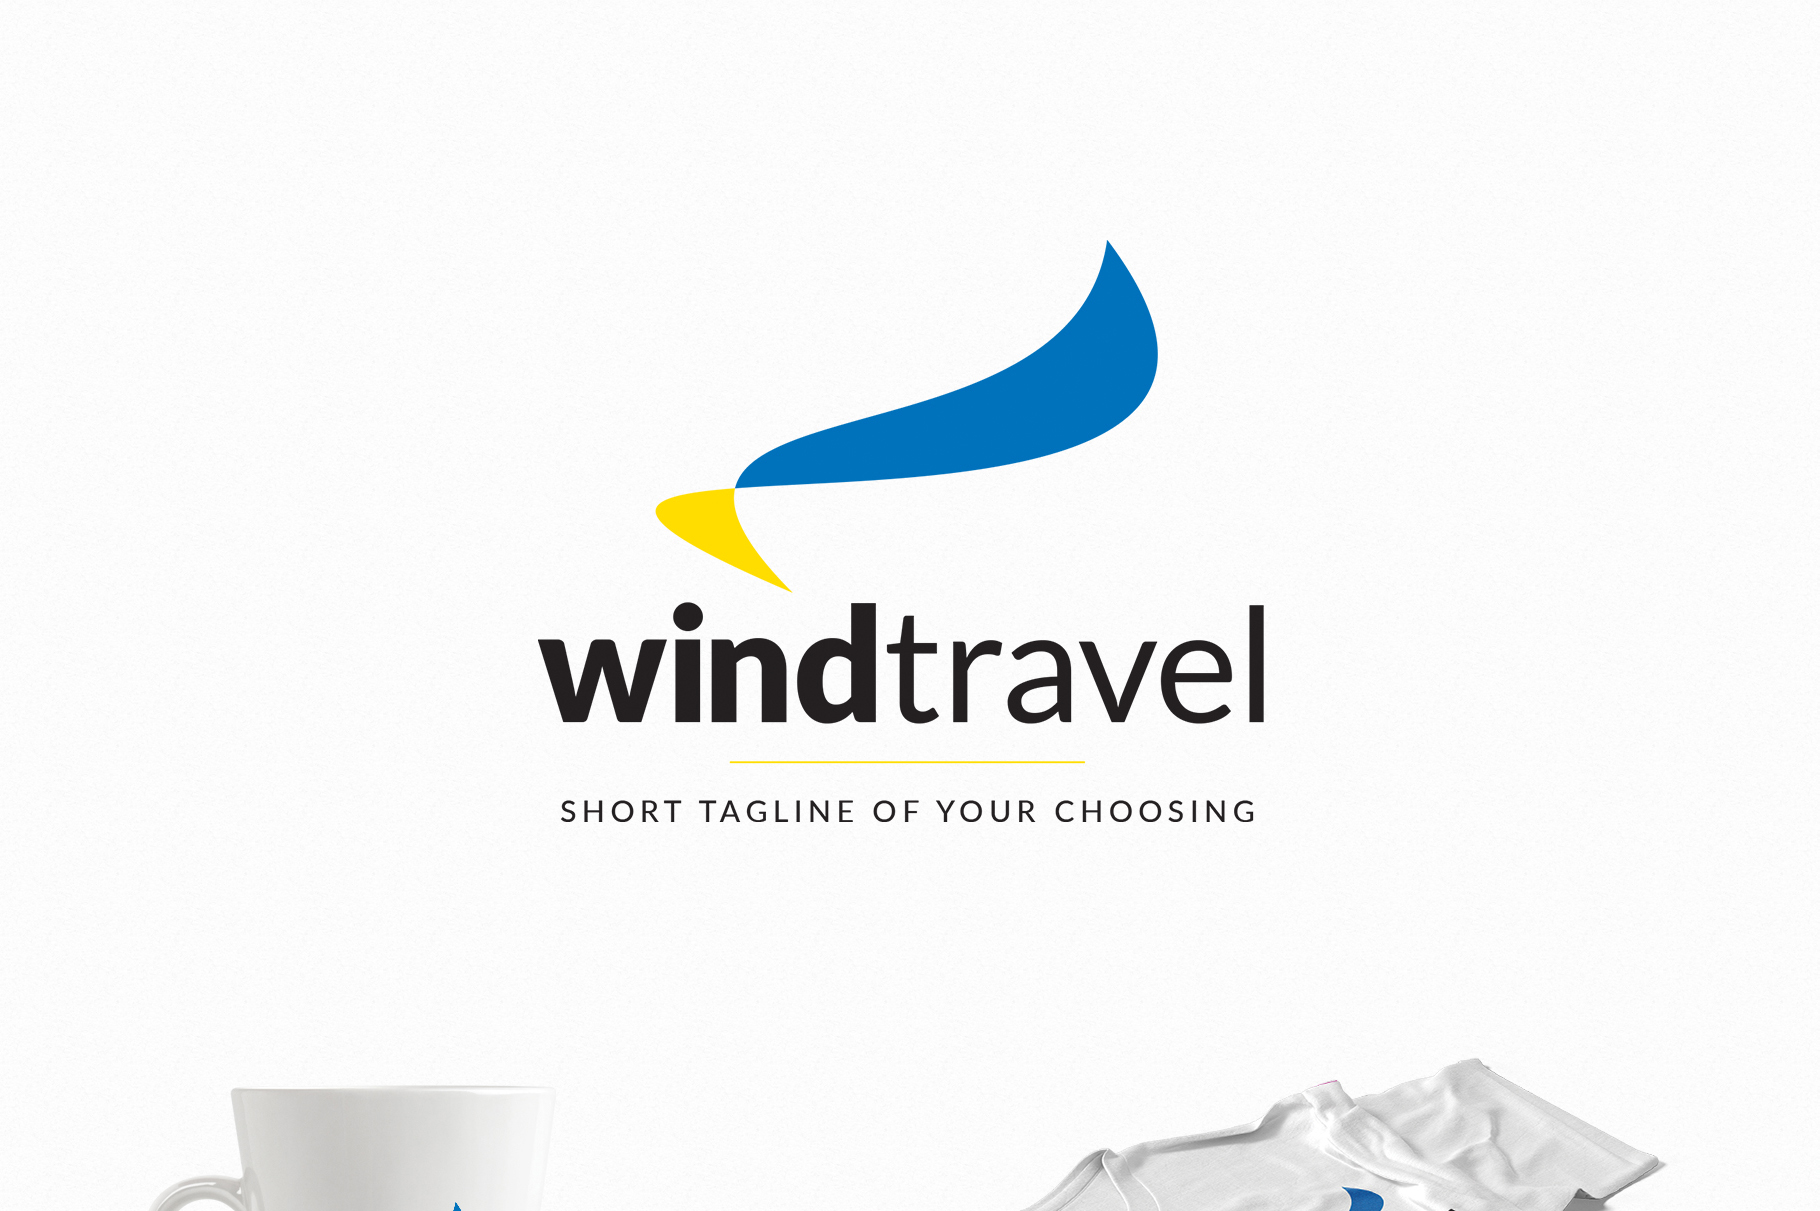 Wind Travel - a Travel Agency Logo example image 2